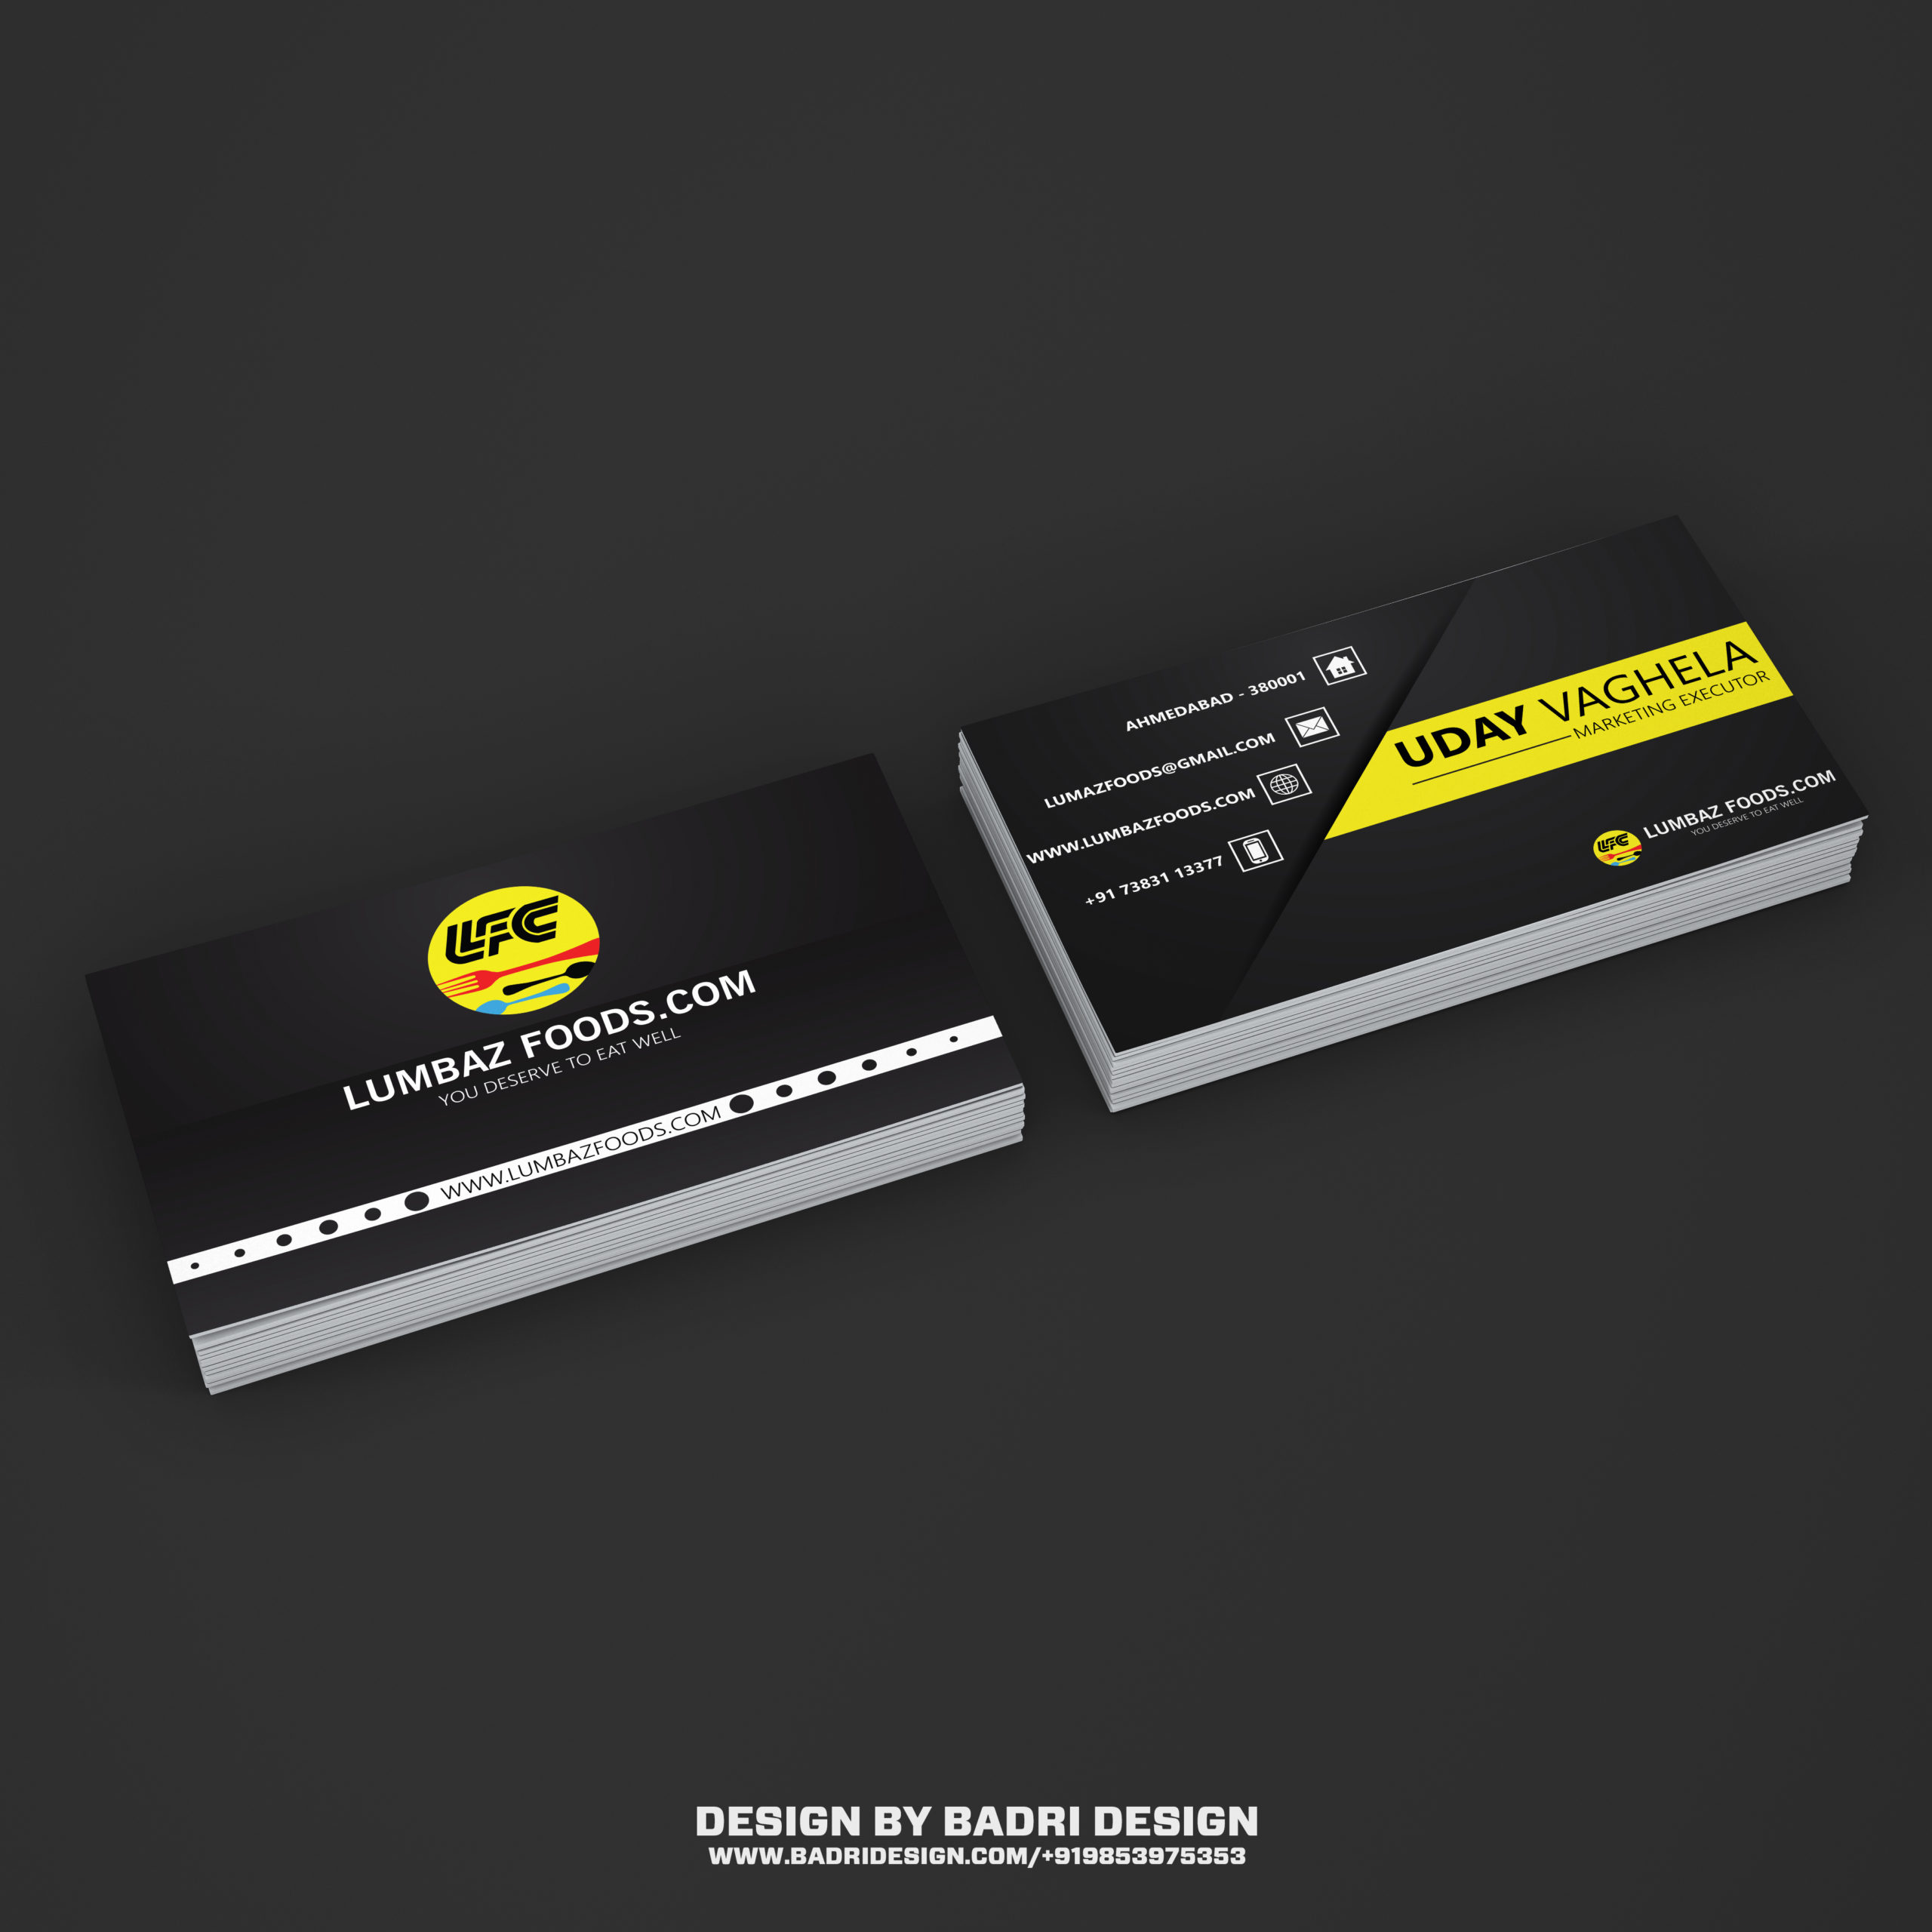 Food Delivery services provider business design by Badri Design